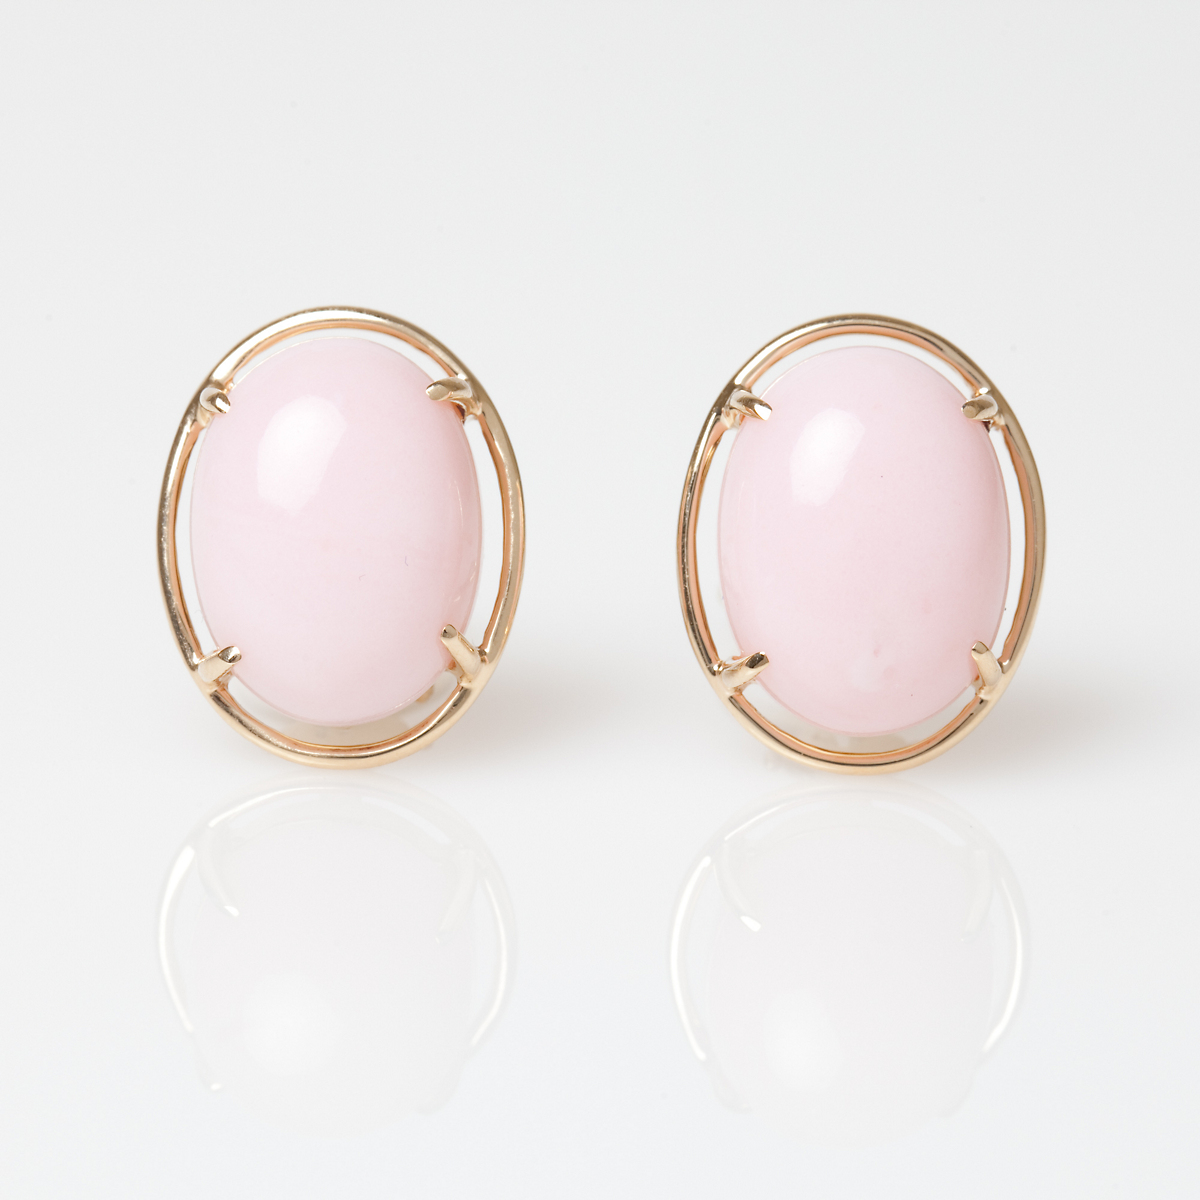 Gump's Pink Peruvian Opal Cabochon Earrings